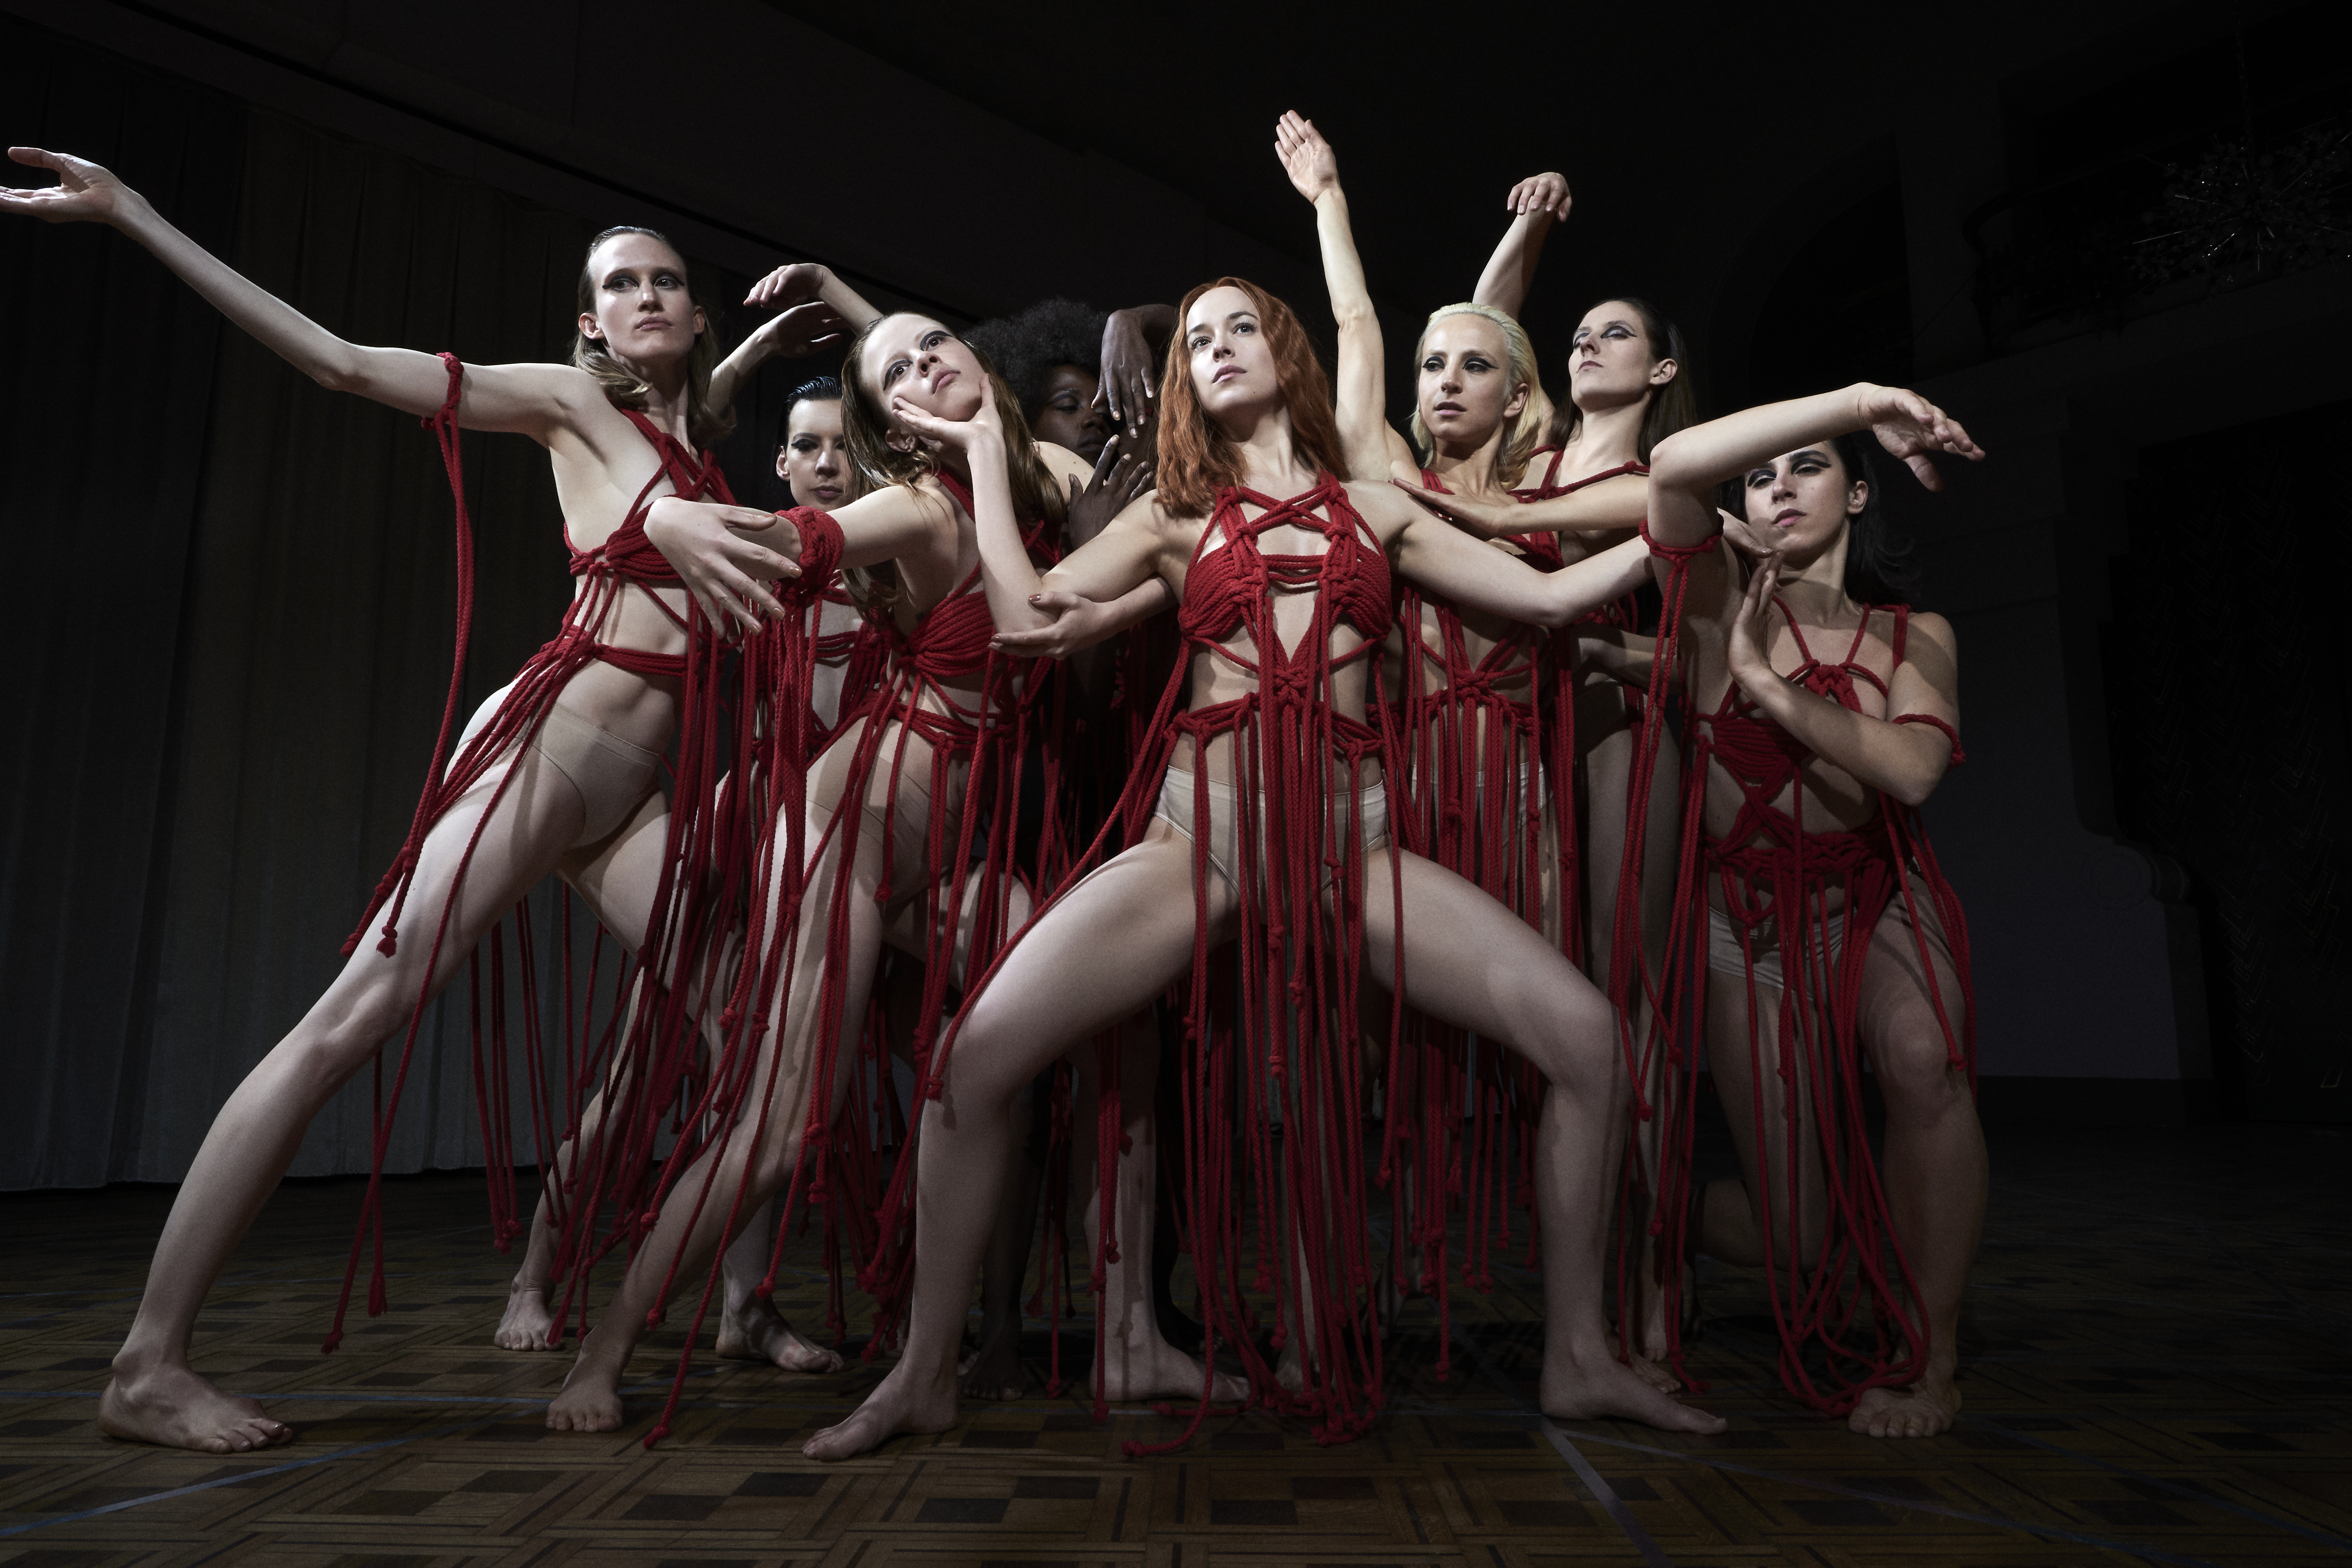 The new Suspiria offers style and suspense — but don't expect any neon pink